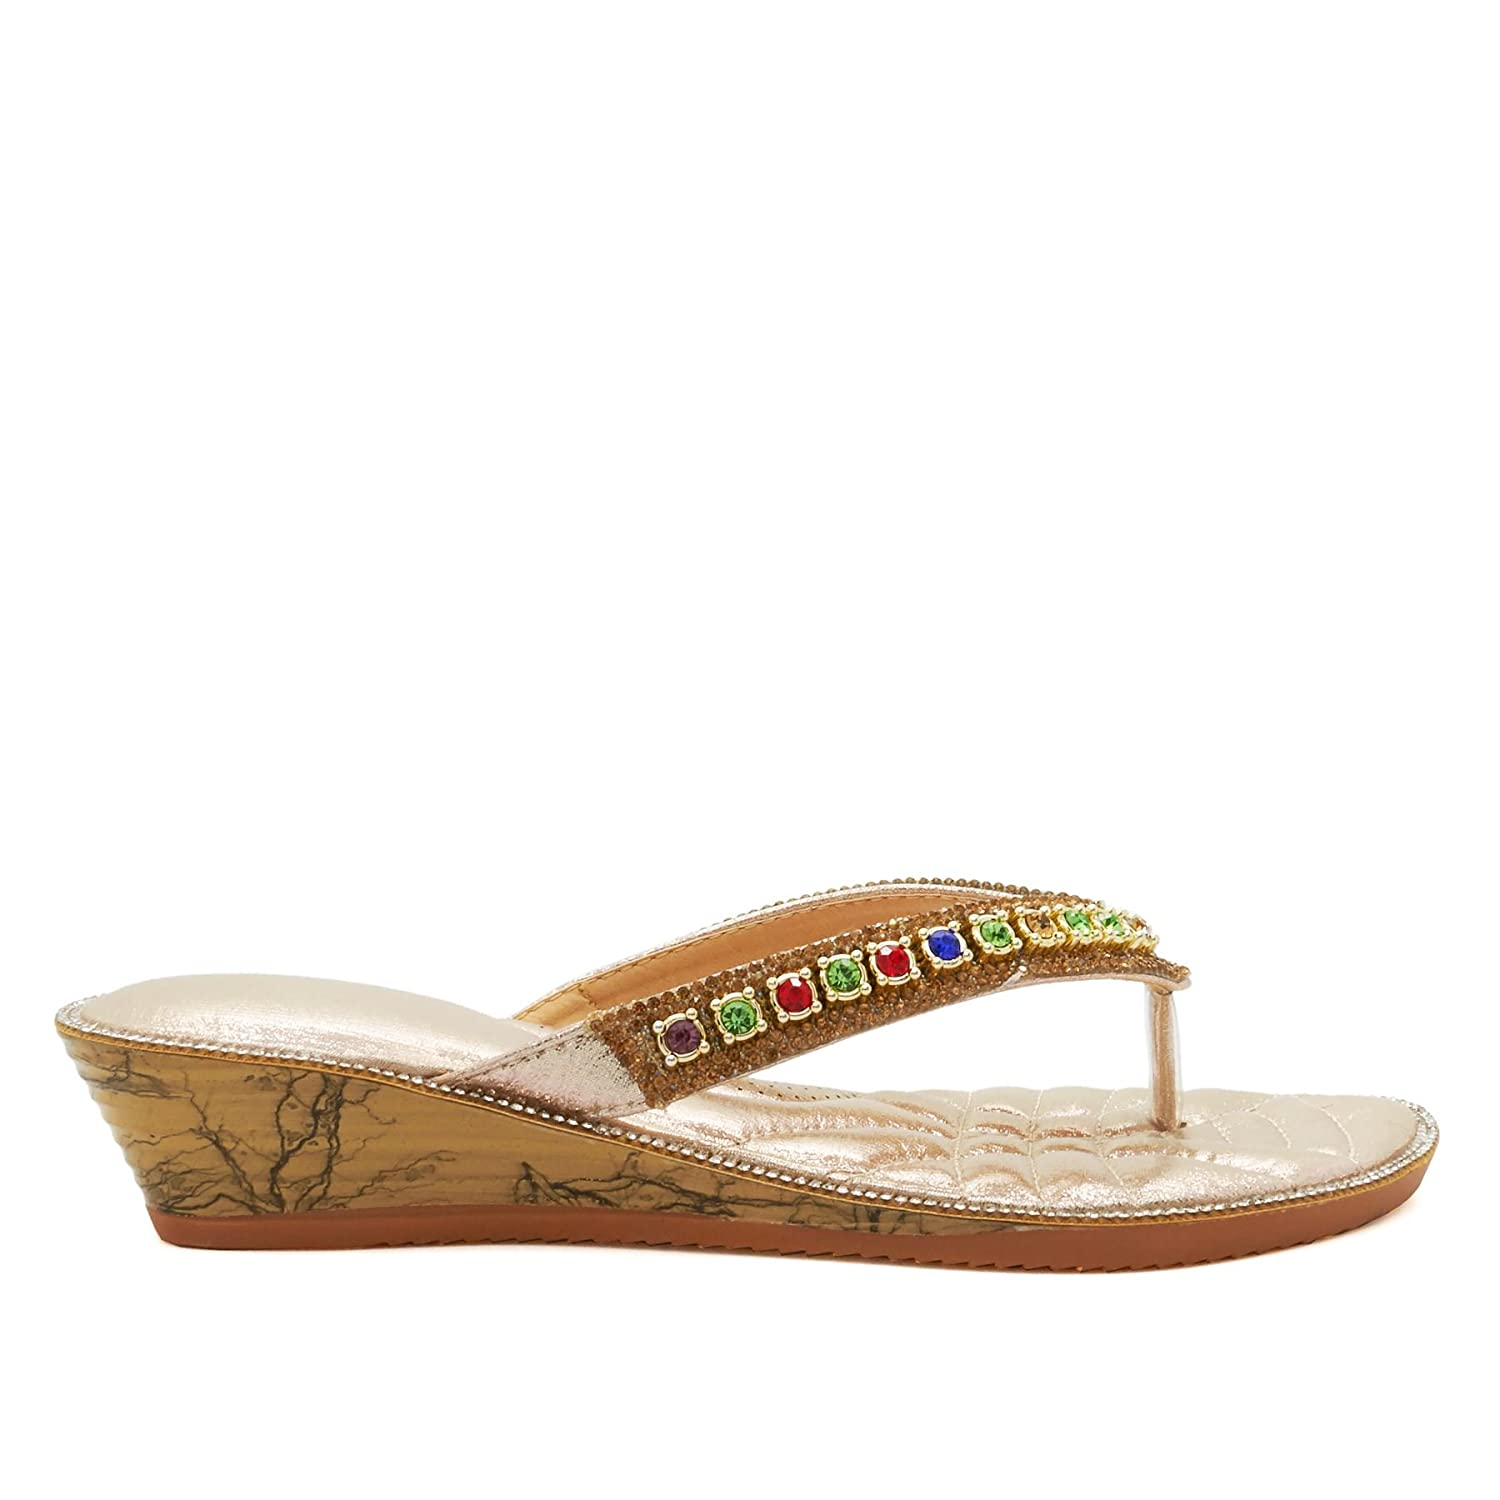 c9aeb504231e New Ladies Diamante Low Wedge Heel Sandals Womens Summer Holiday Toe Post  Size UK 3-9  Amazon.co.uk  Shoes   Bags